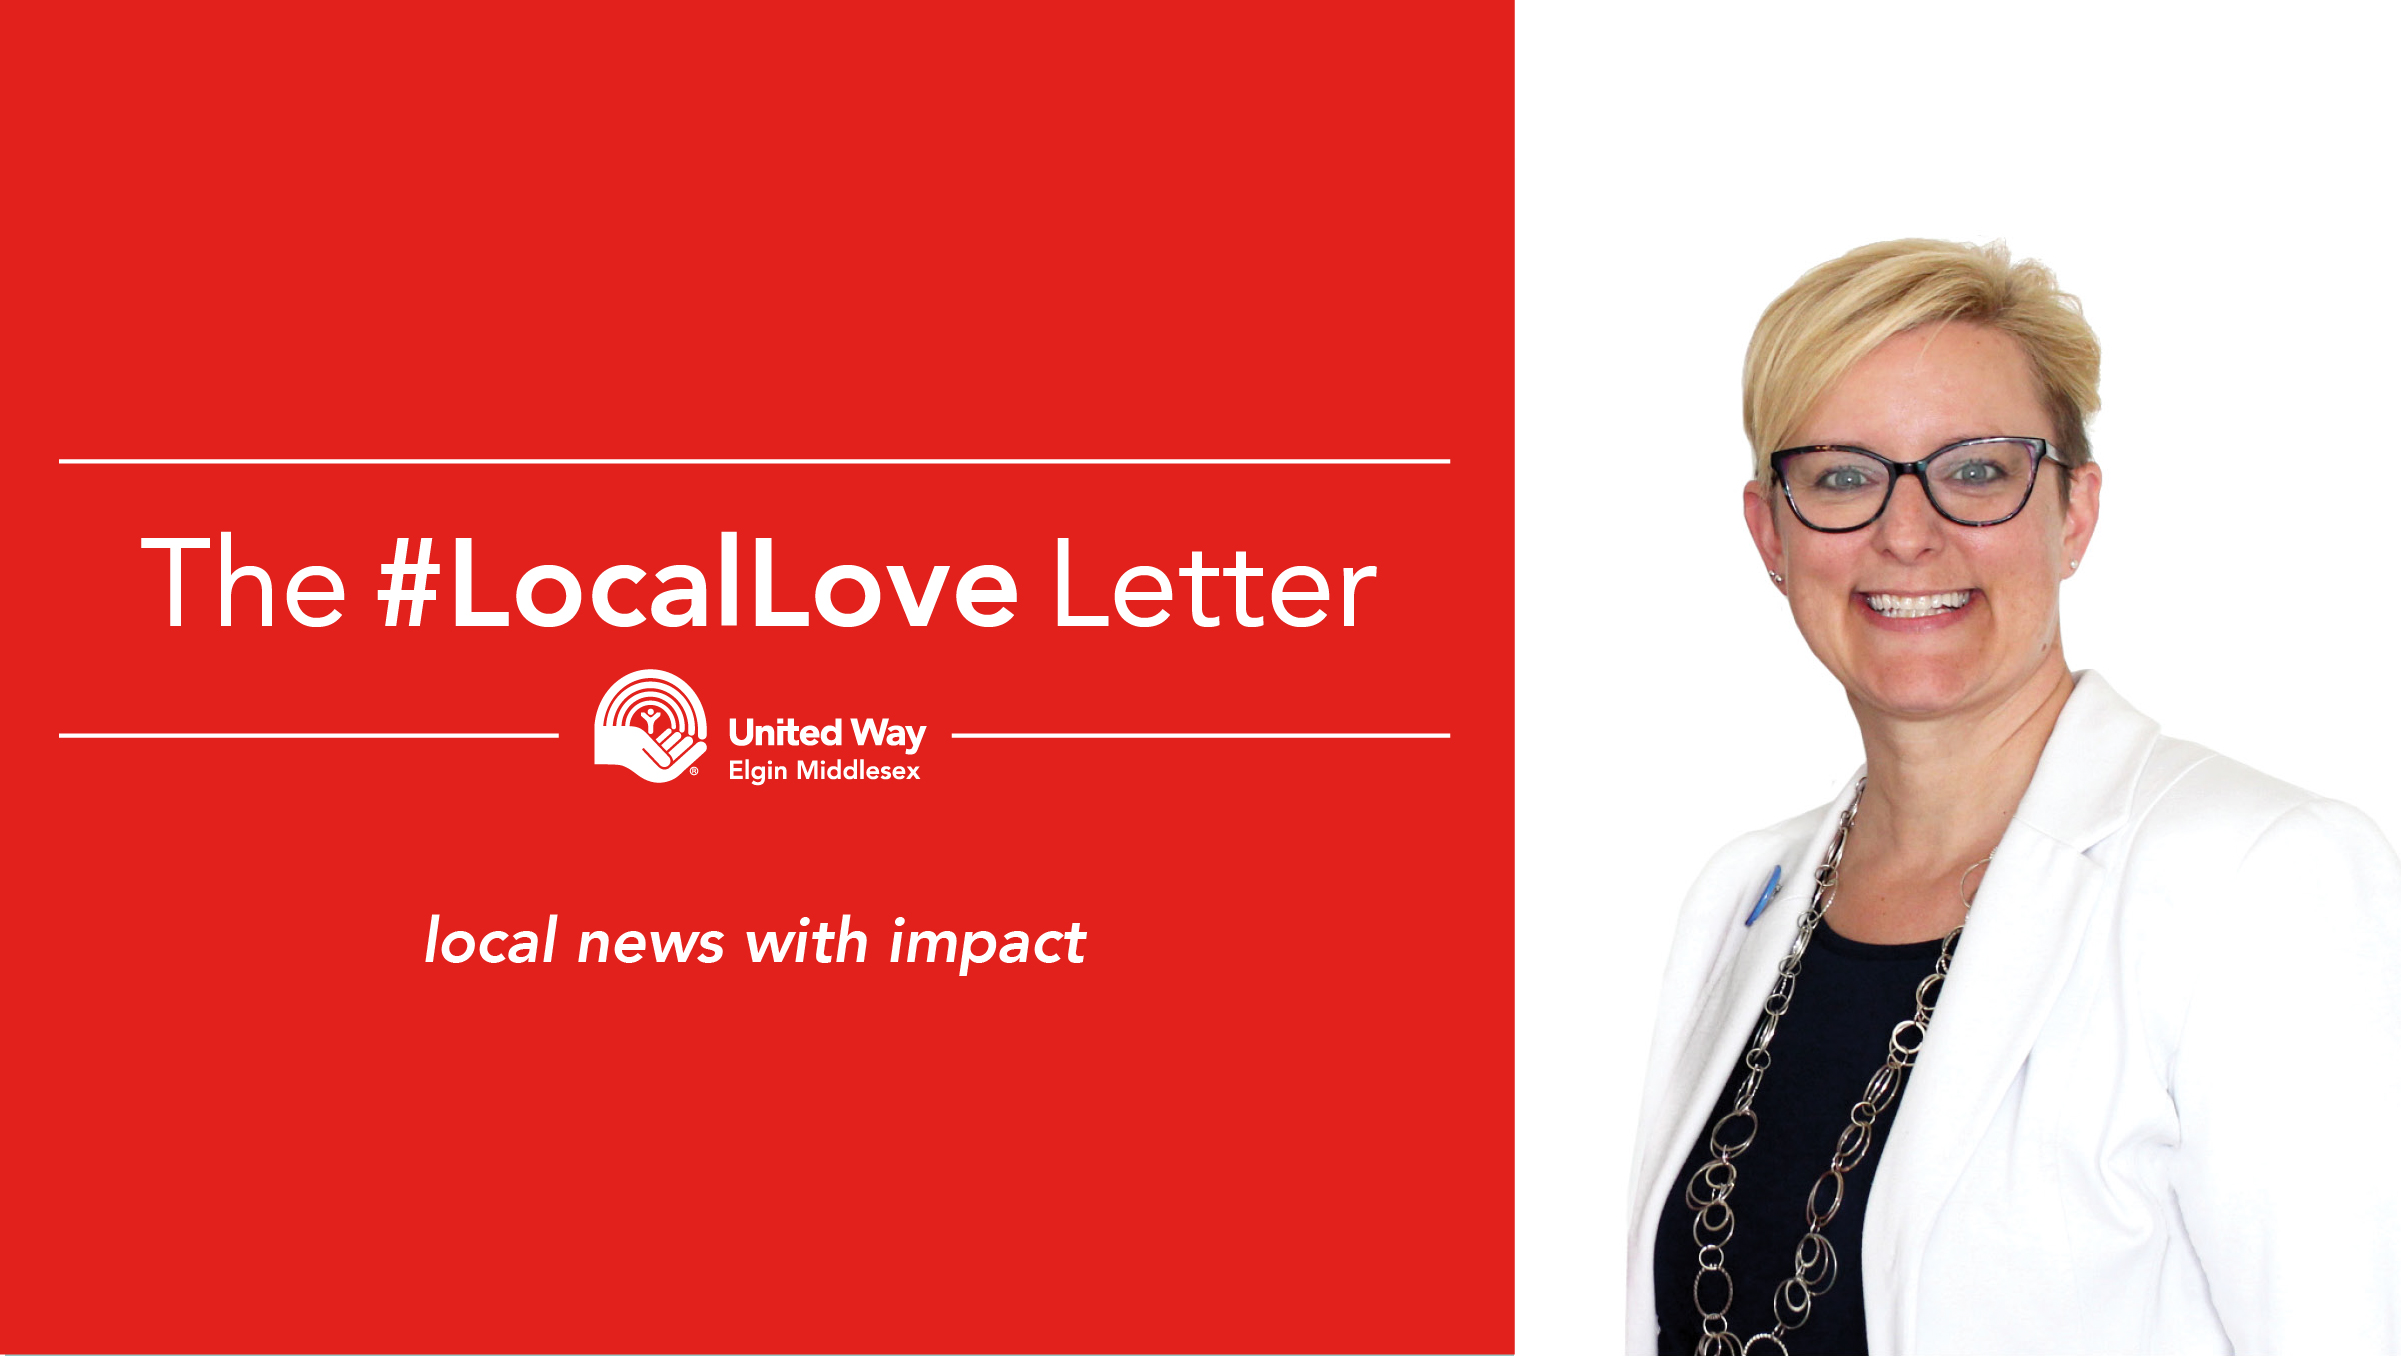 The #LocalLove Letter, Kelly Ziegner